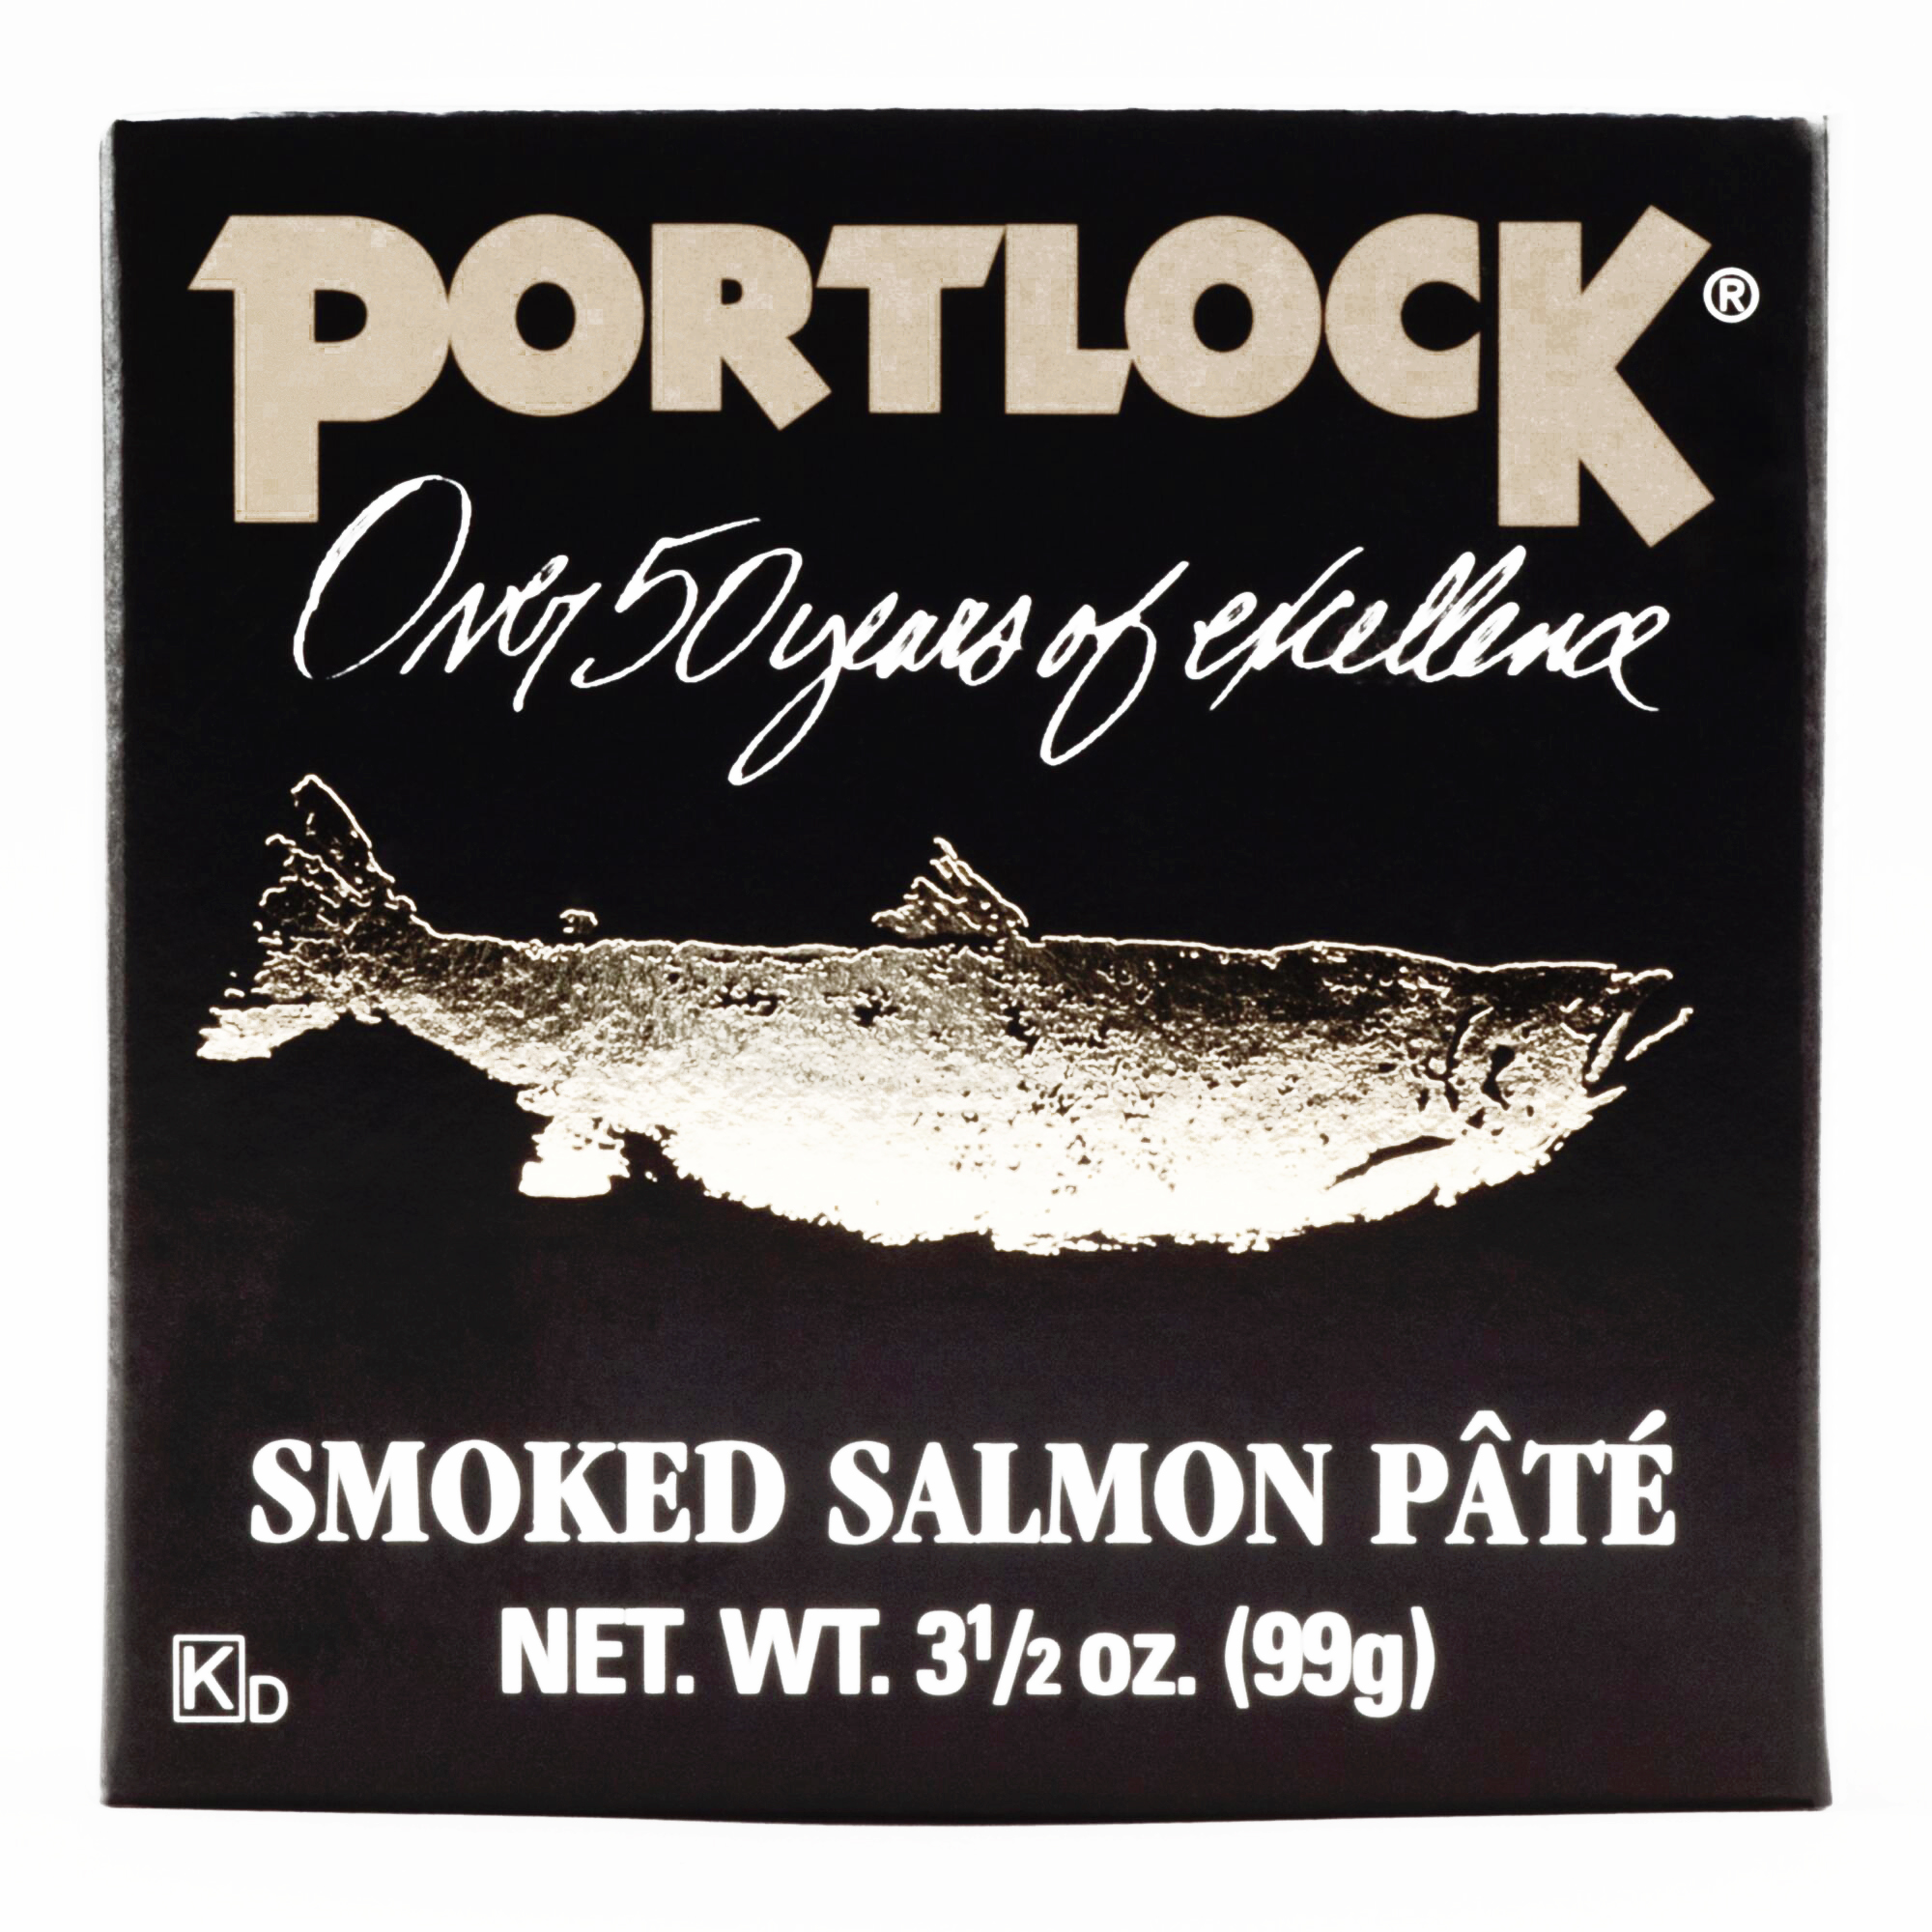 Portlock Smoked Salmon Pate \t3.5 oz each (1 Item Per Order, not per case) by